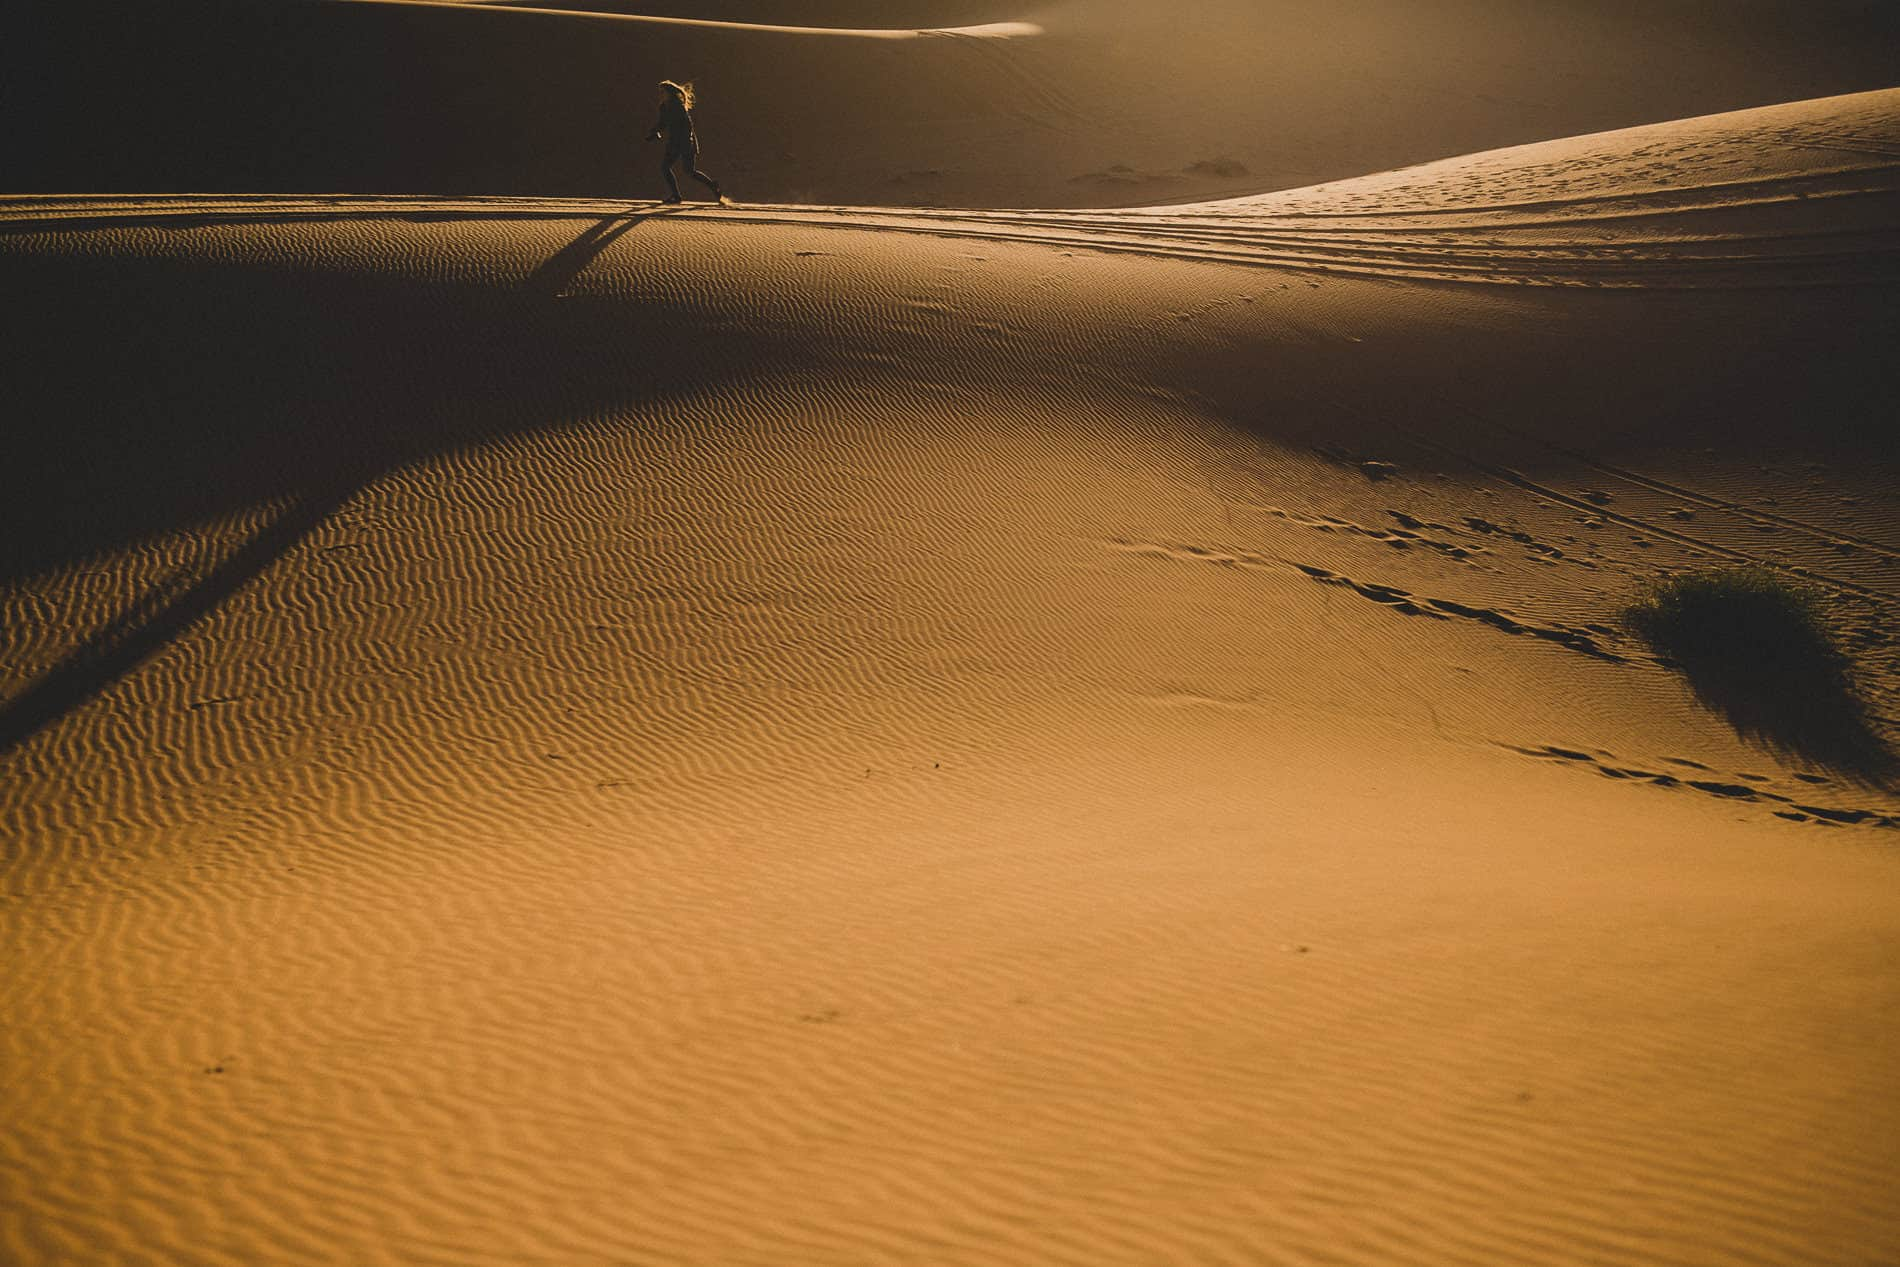 a girl is running in the dunes at sunset